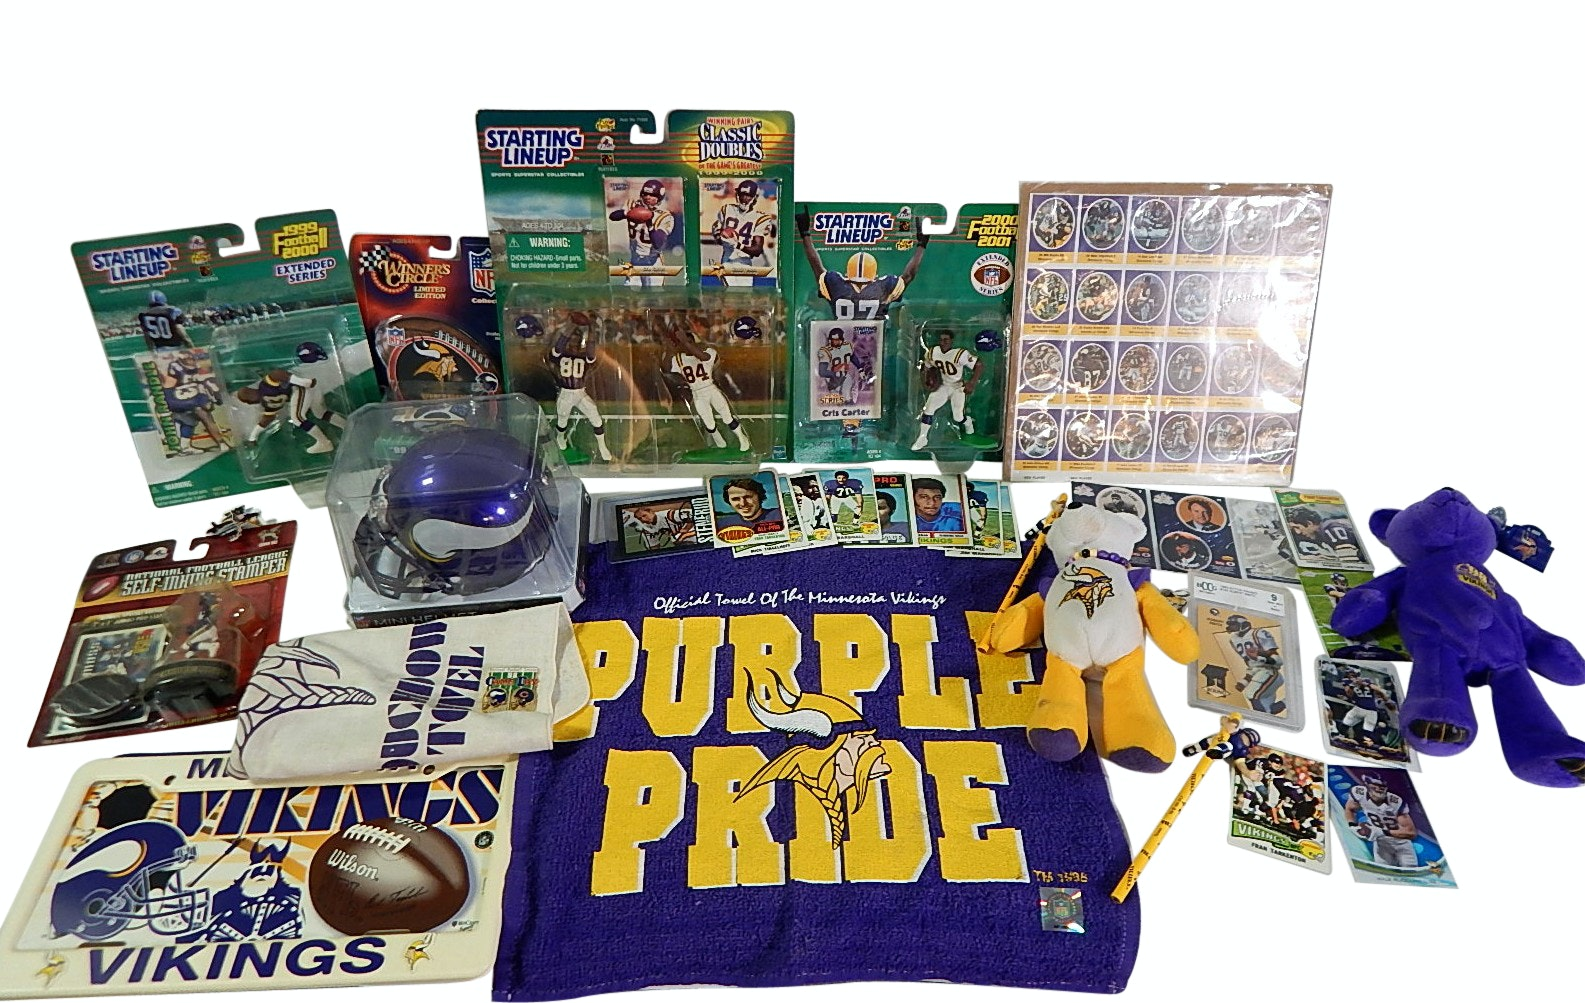 NFL Minnesota Vikings Collectibles Lot with Jan Stenurud Signed Card, Towels